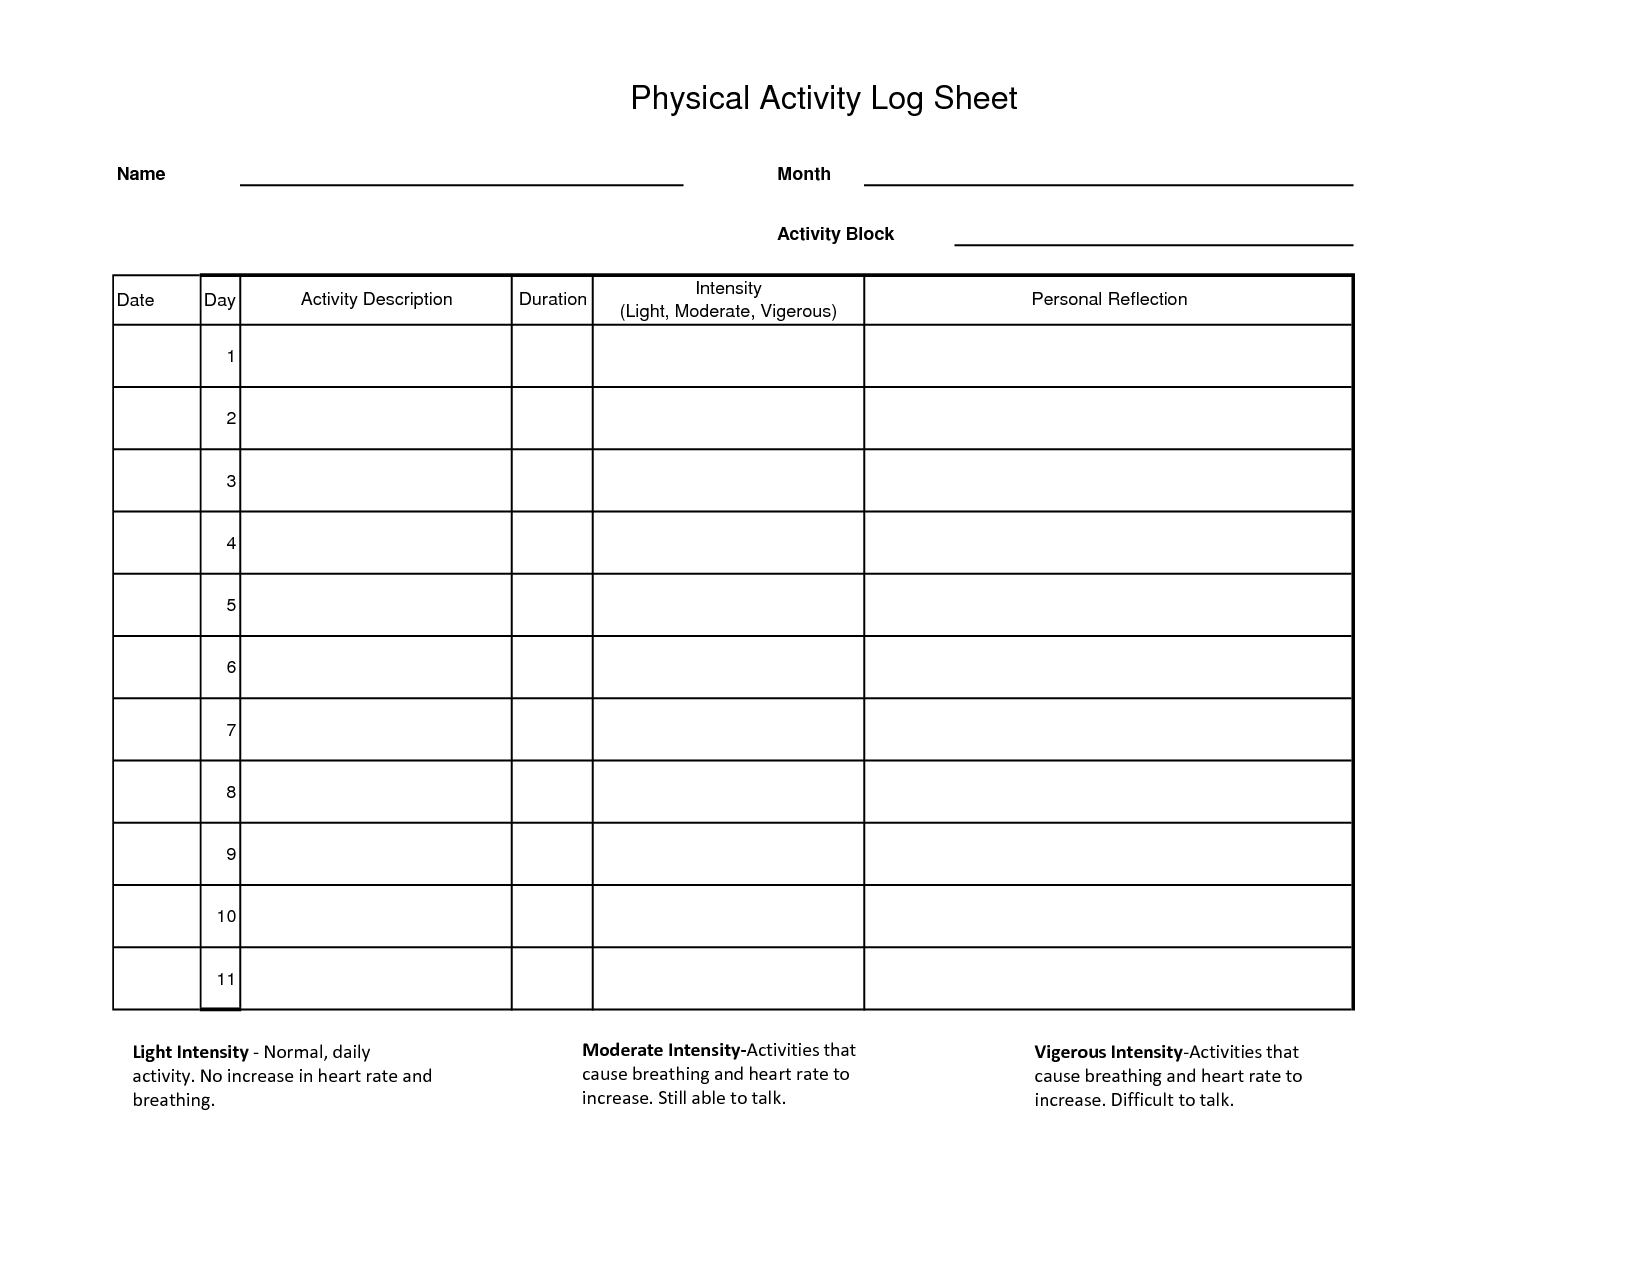 Physical Activity Log Sheet By Kpj